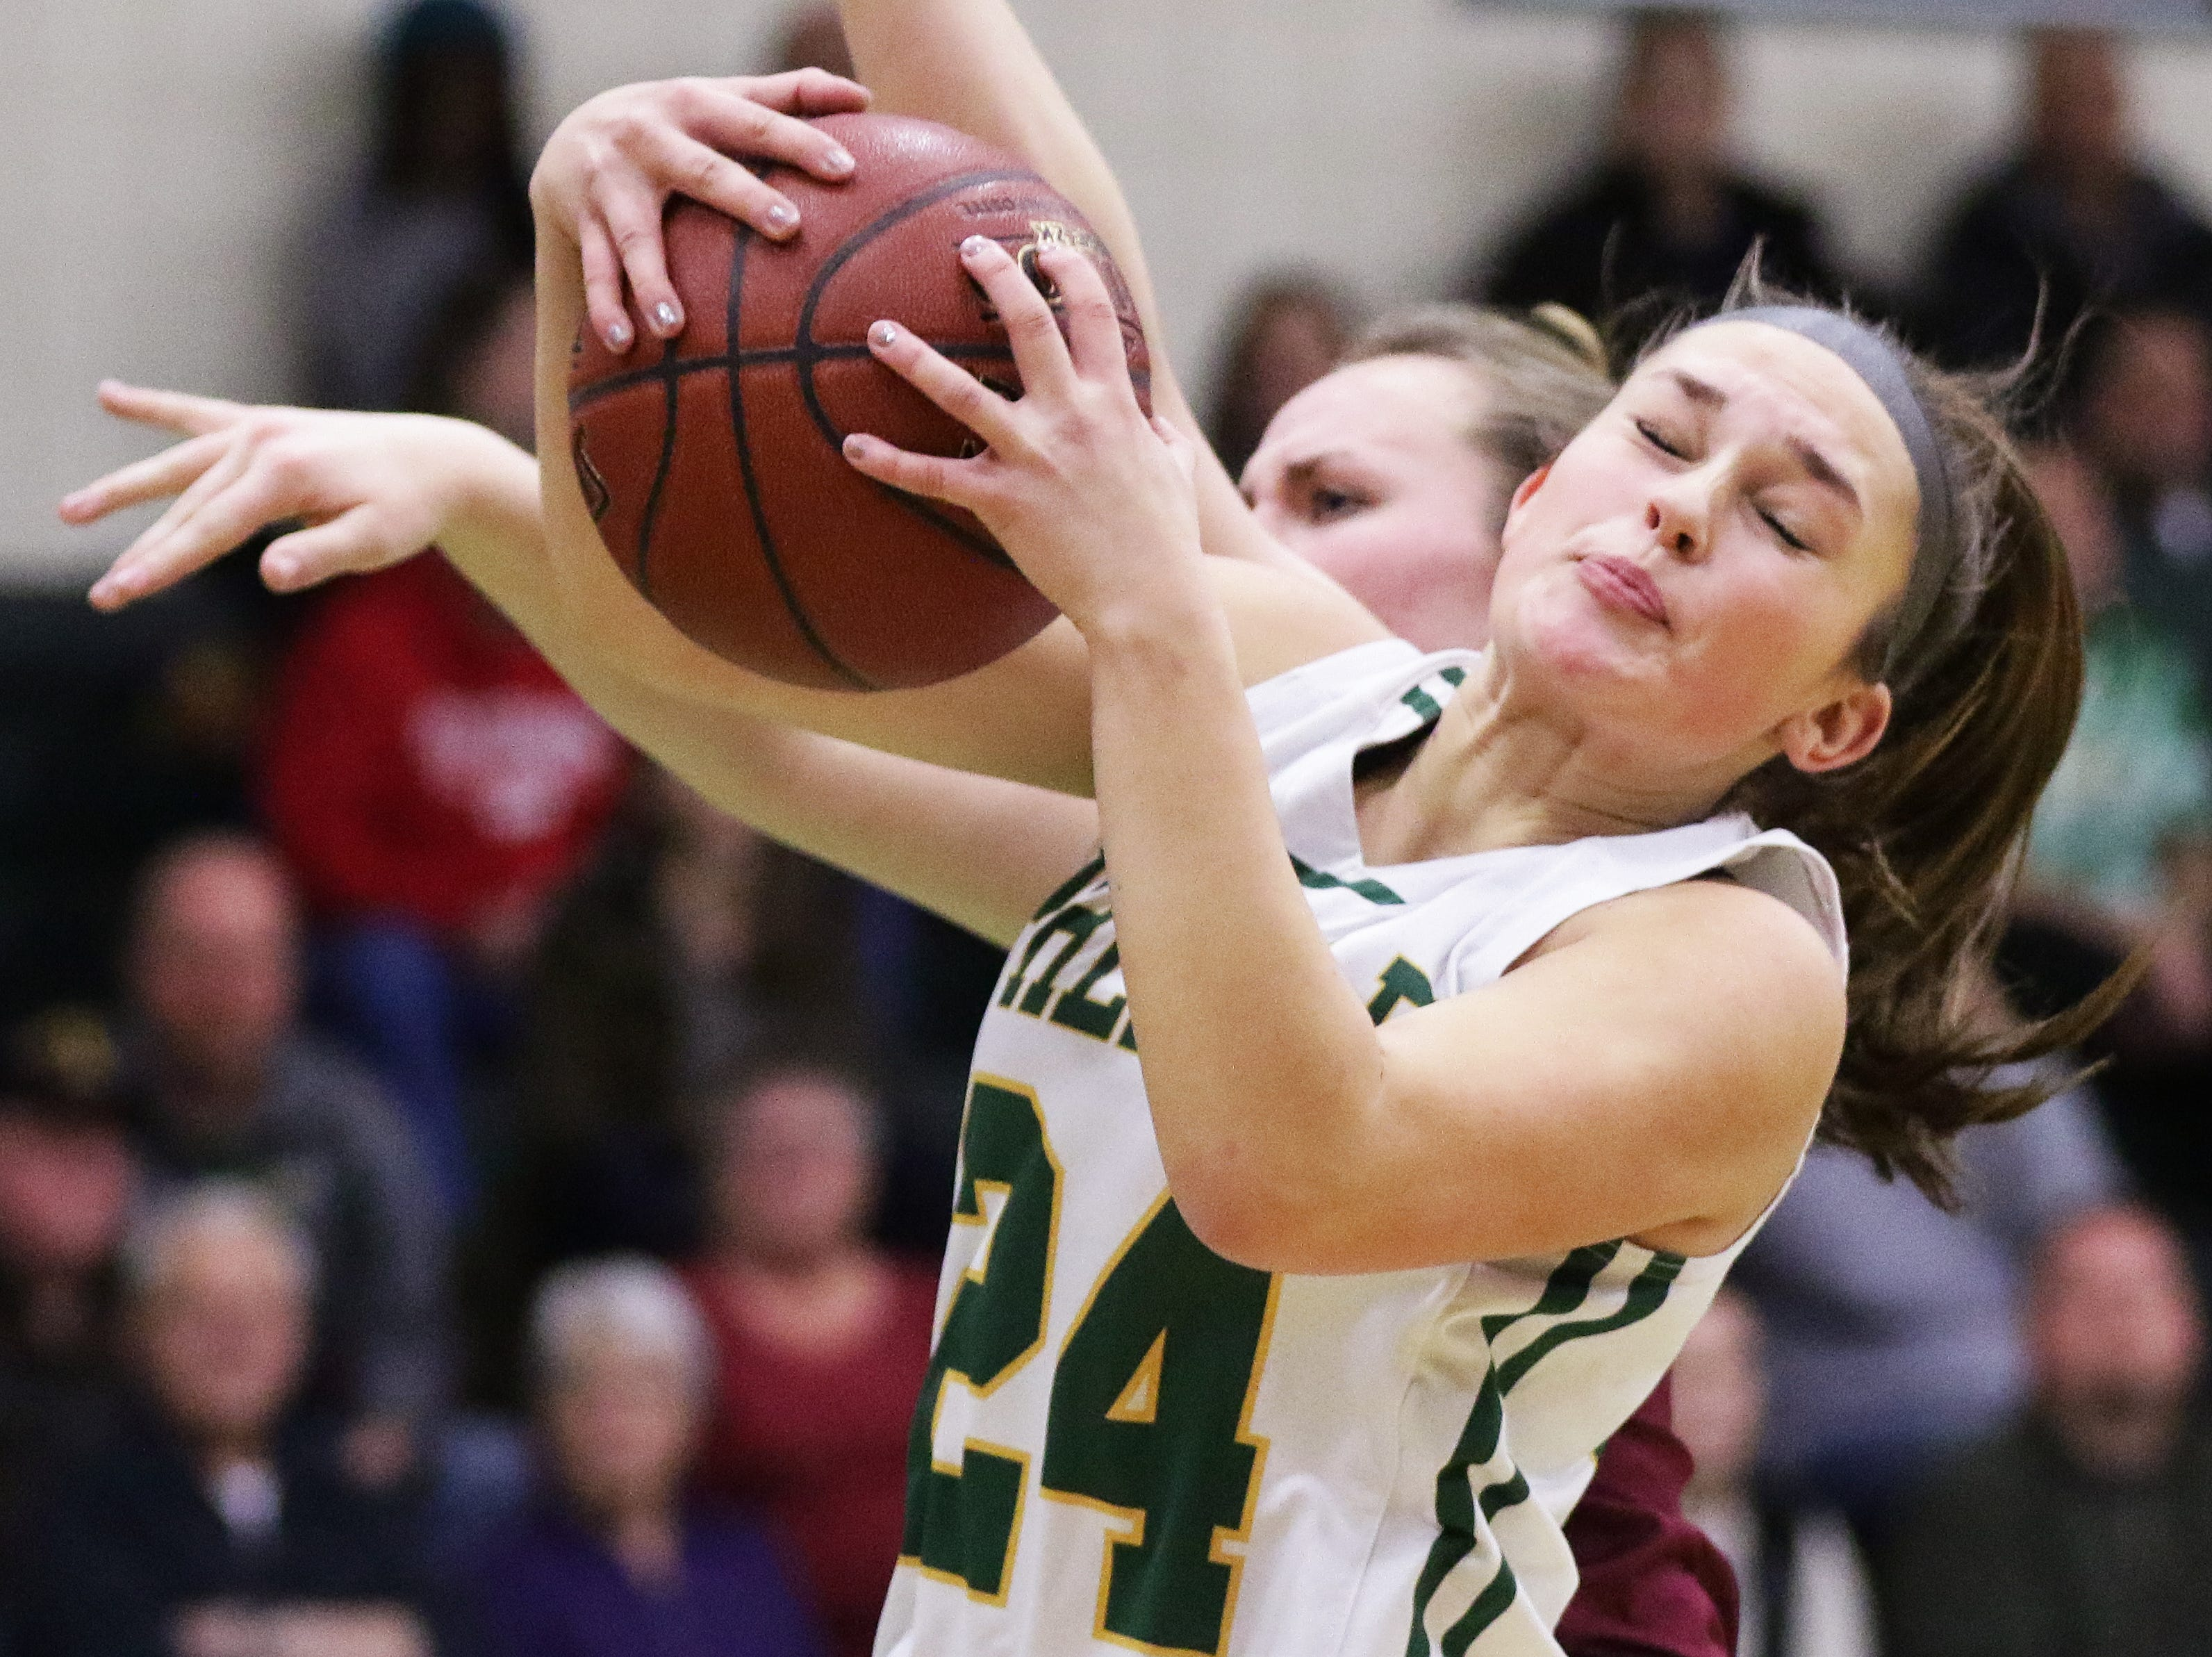 Green Bay Preble's Ella Bialkowski (24) grabs a rebound against De Pere in a girls basketball game at Preble high school on Tuesday, January 8, 2019 in Green Bay, Wis.